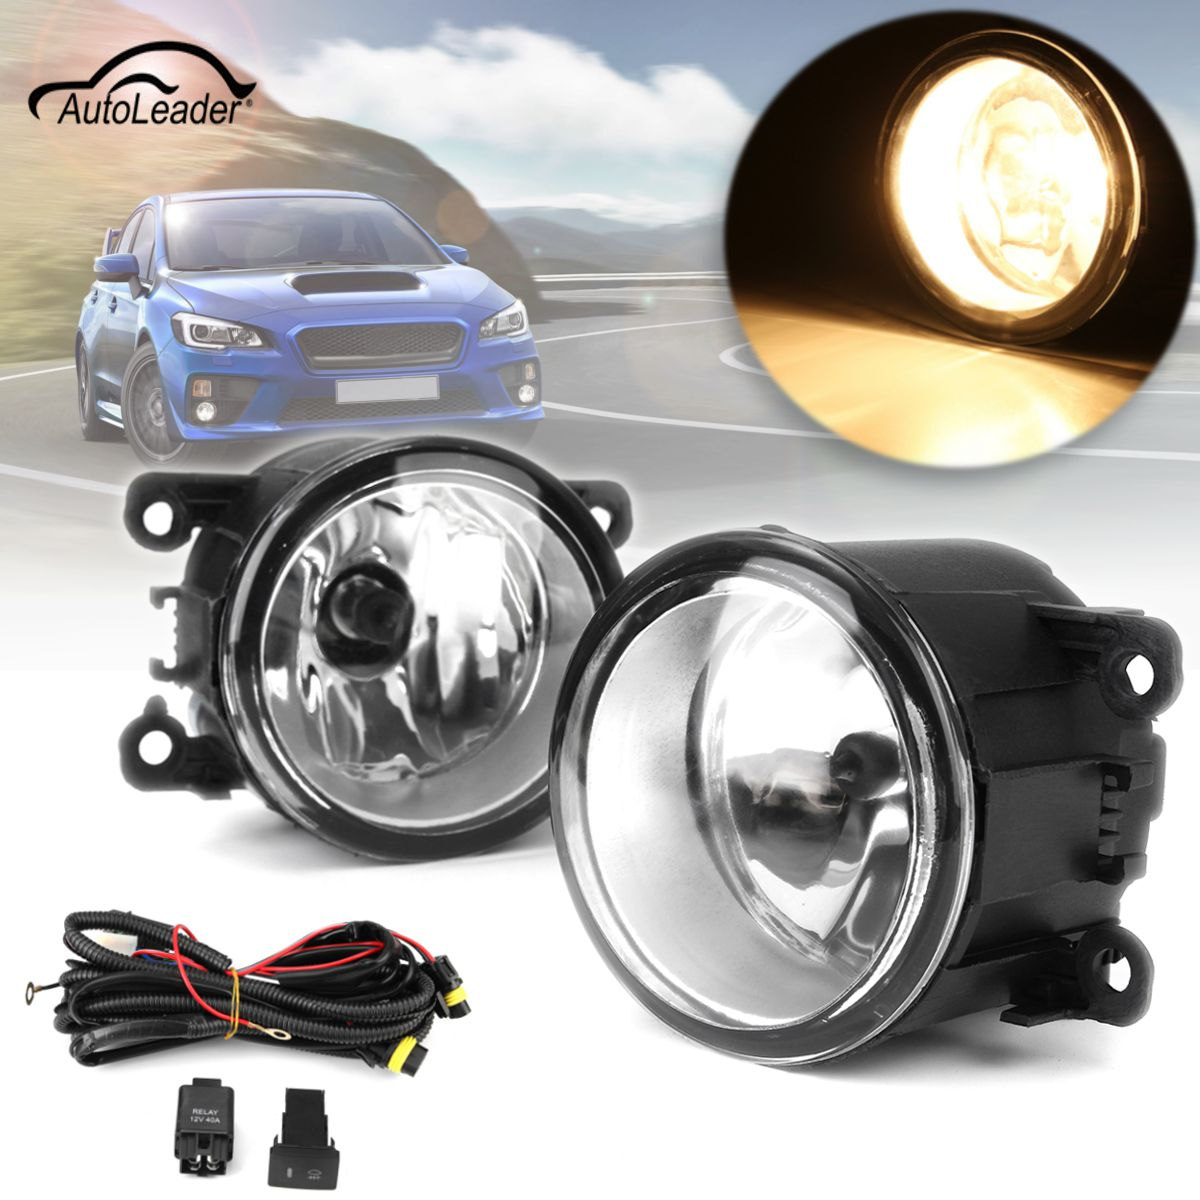 For Subaru Impreza/WRX/WRX STI/XV 1 Pair H11 Car Front Fog Light Clear Lens With Wiring Kit очки солнцезащитные burberry burberry bu034dwqbg92